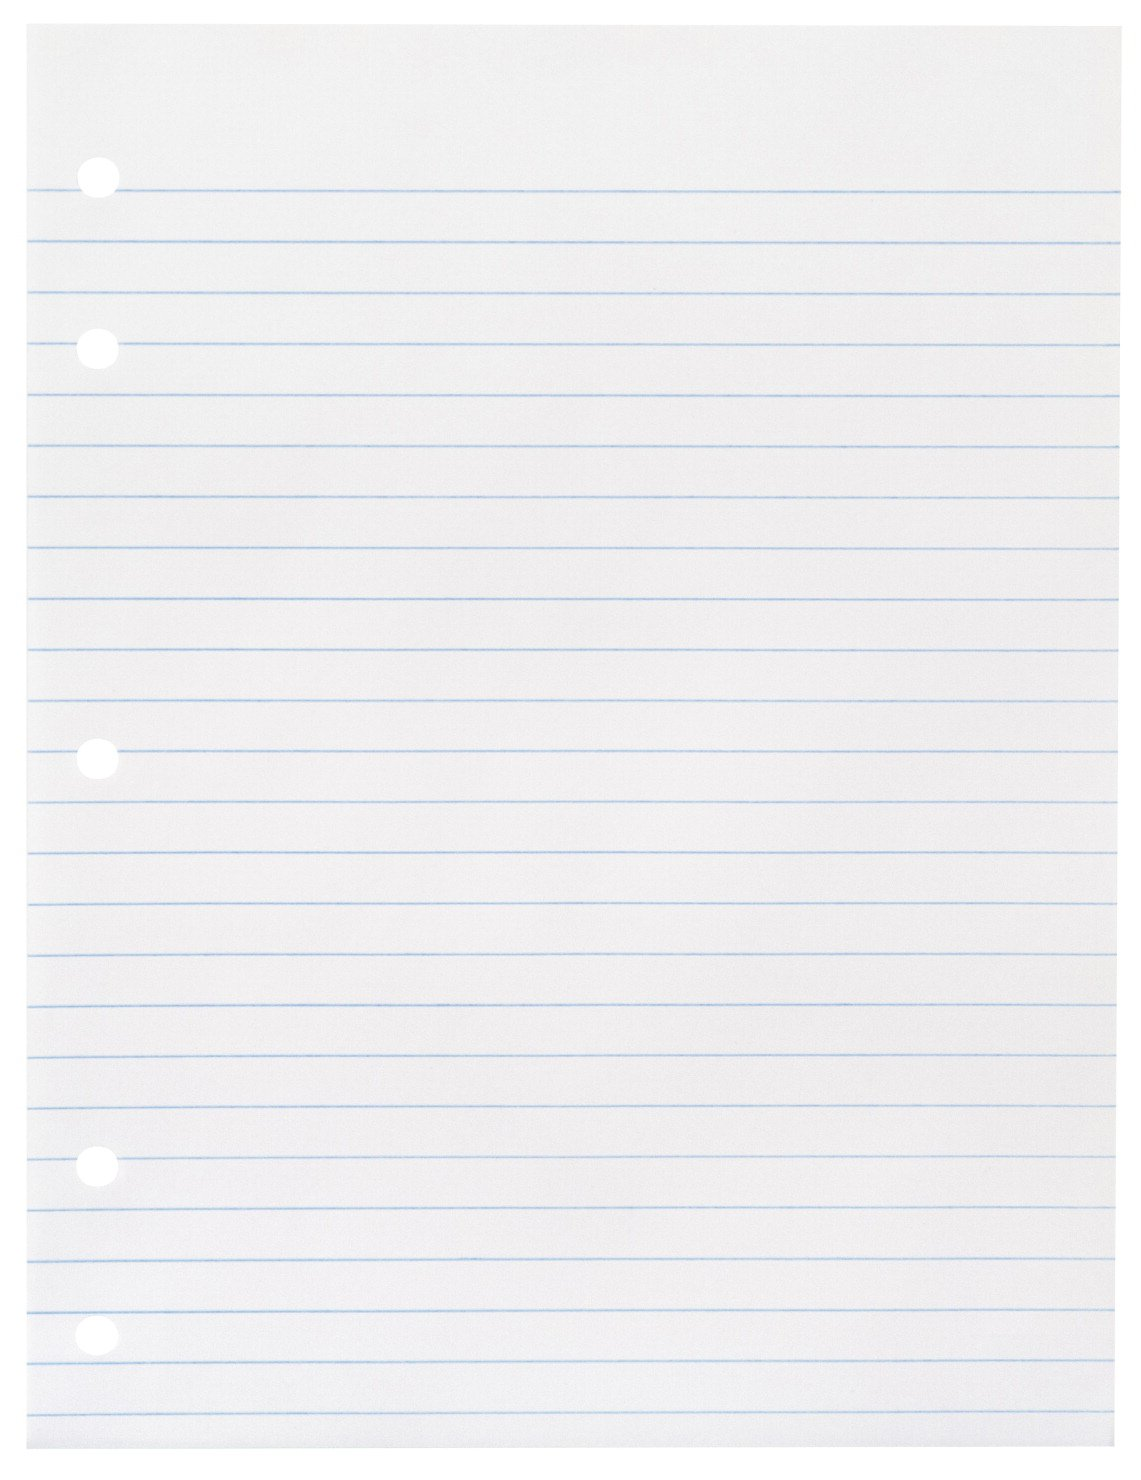 School Smart 5 Hole Punched Notebook Filler Paper Without Margin - 8 x 10 1/2 inches - Ream of 500